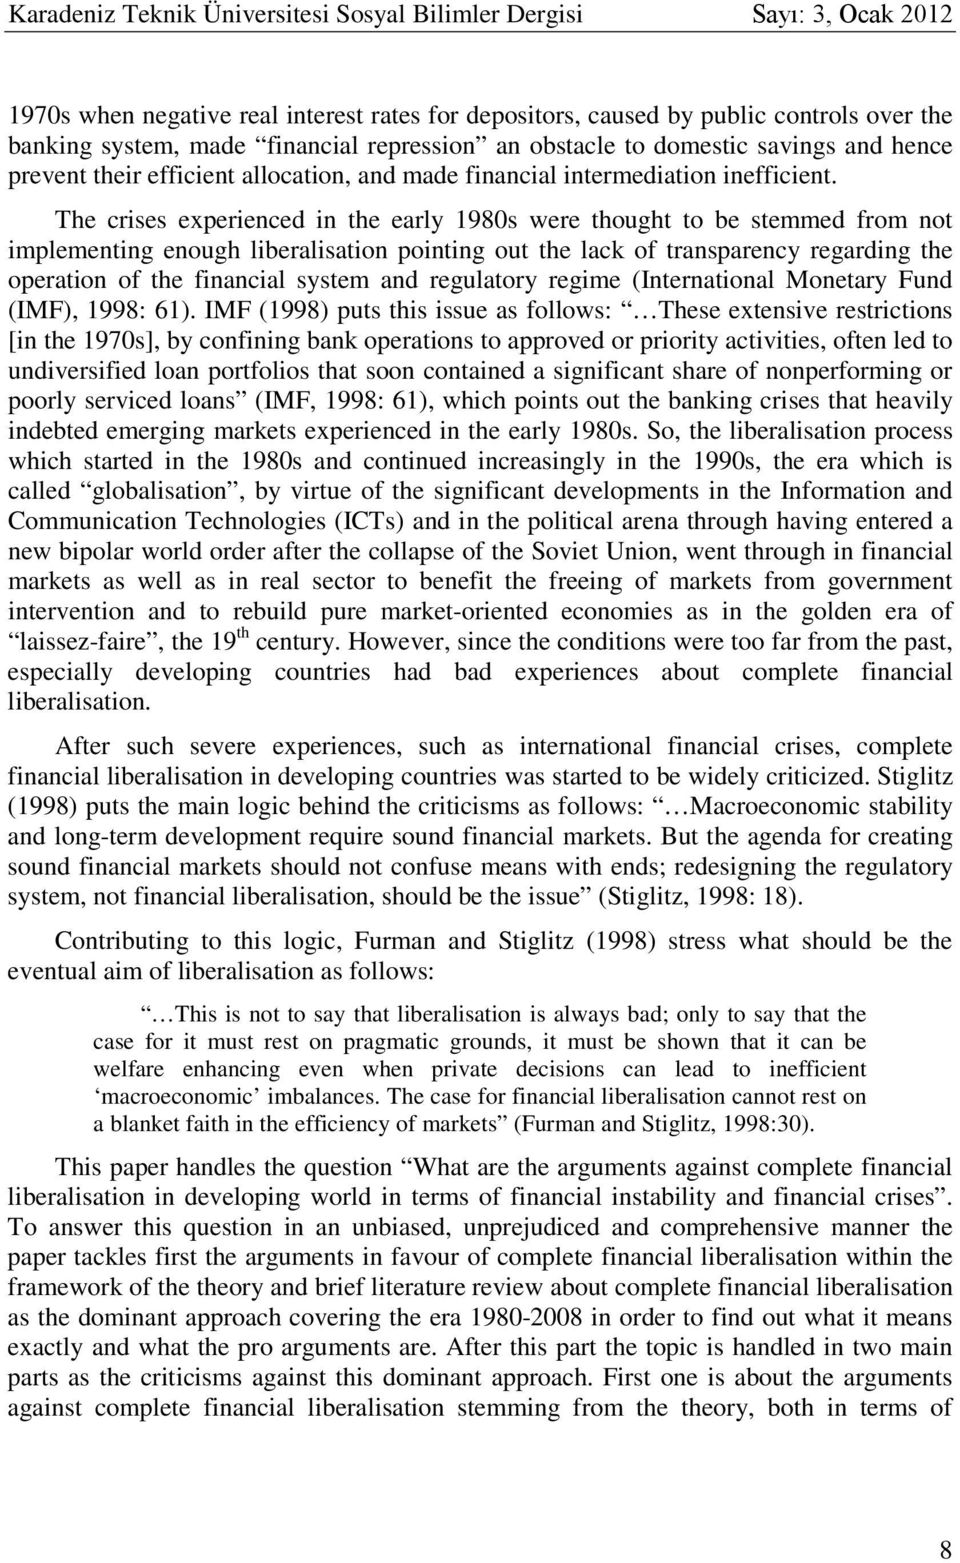 The crises experienced in the early 1980s were thought to be stemmed from not implementing enough liberalisation pointing out the lack of transparency regarding the operation of the financial system